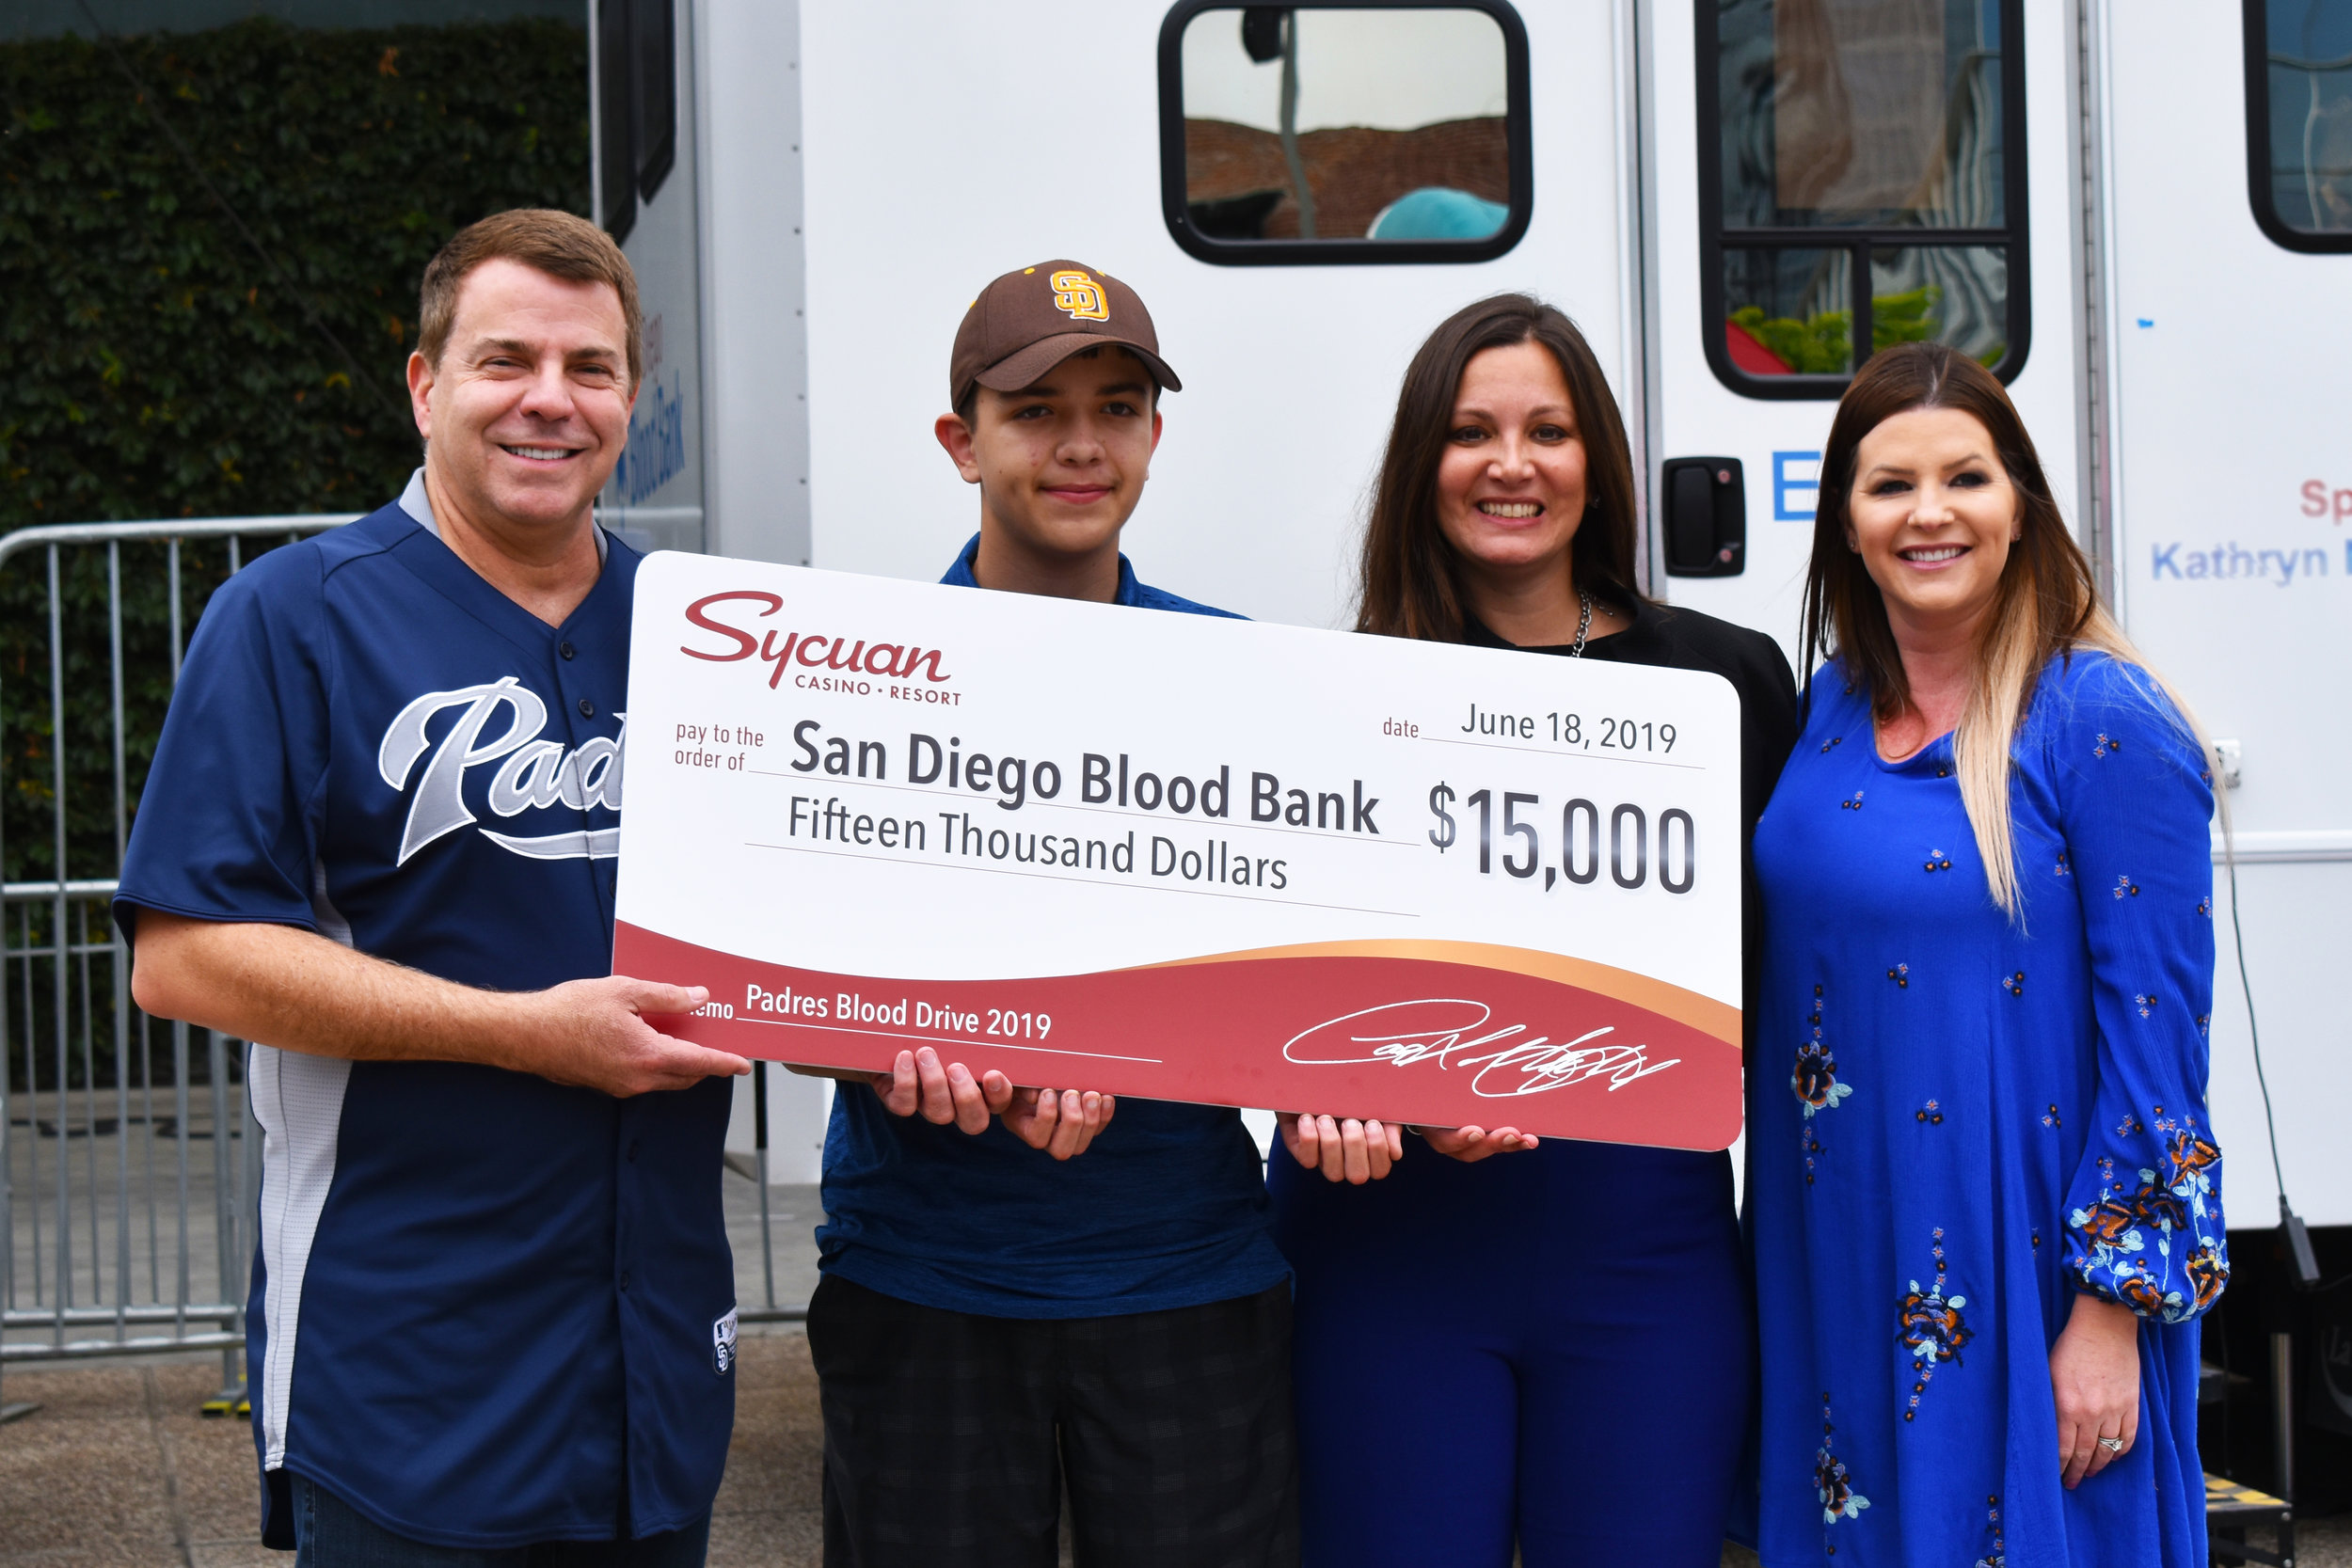 San Diego Blood Bank CEO David Wellis, Team Survivor Aidan Good, San Diego Blood Bank Vice President of Development Sherry Serio smile with a giant check from presenting sponsor, Sycuan Casino Resort's Community Development Manager Lauren Morrow.